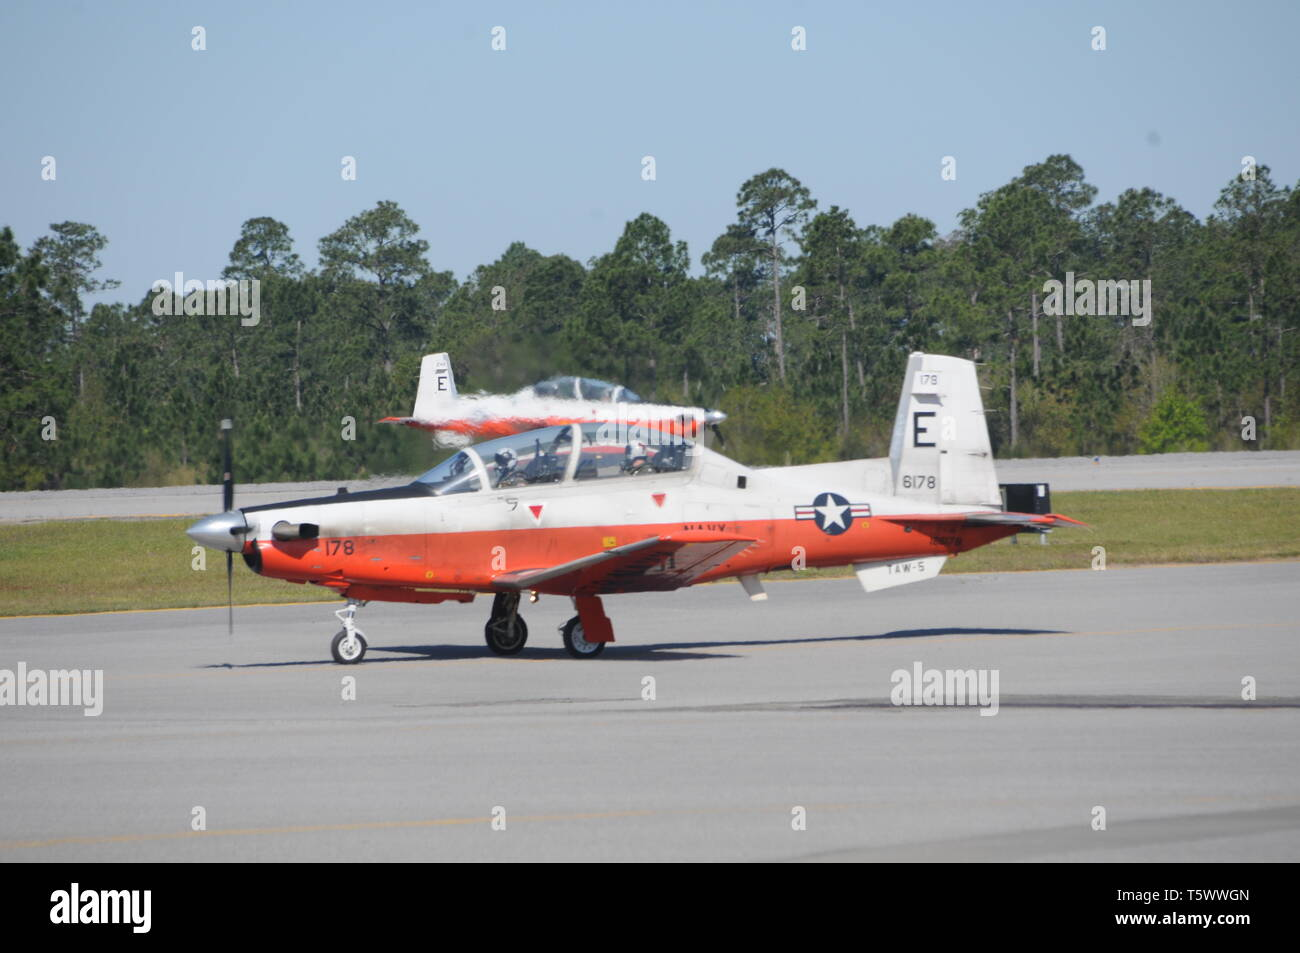 190401-N-OU681-1193 NAVAL AIR STATION WHITING FIELD, Fla. (April 1, 2019) -- Naval aviators from Training Squadron (VT) 2 taxi out for a training flight in two T-6B Texan II single-engine turboprop aircraft at Naval Air Station Whiting Field, Fla., April 1. VT-2 is the Navy's oldest primary training squadron and graduates approximately 250 student each year. (U.S. Navy photo by Lt. Michelle Tucker/Released) - Stock Image